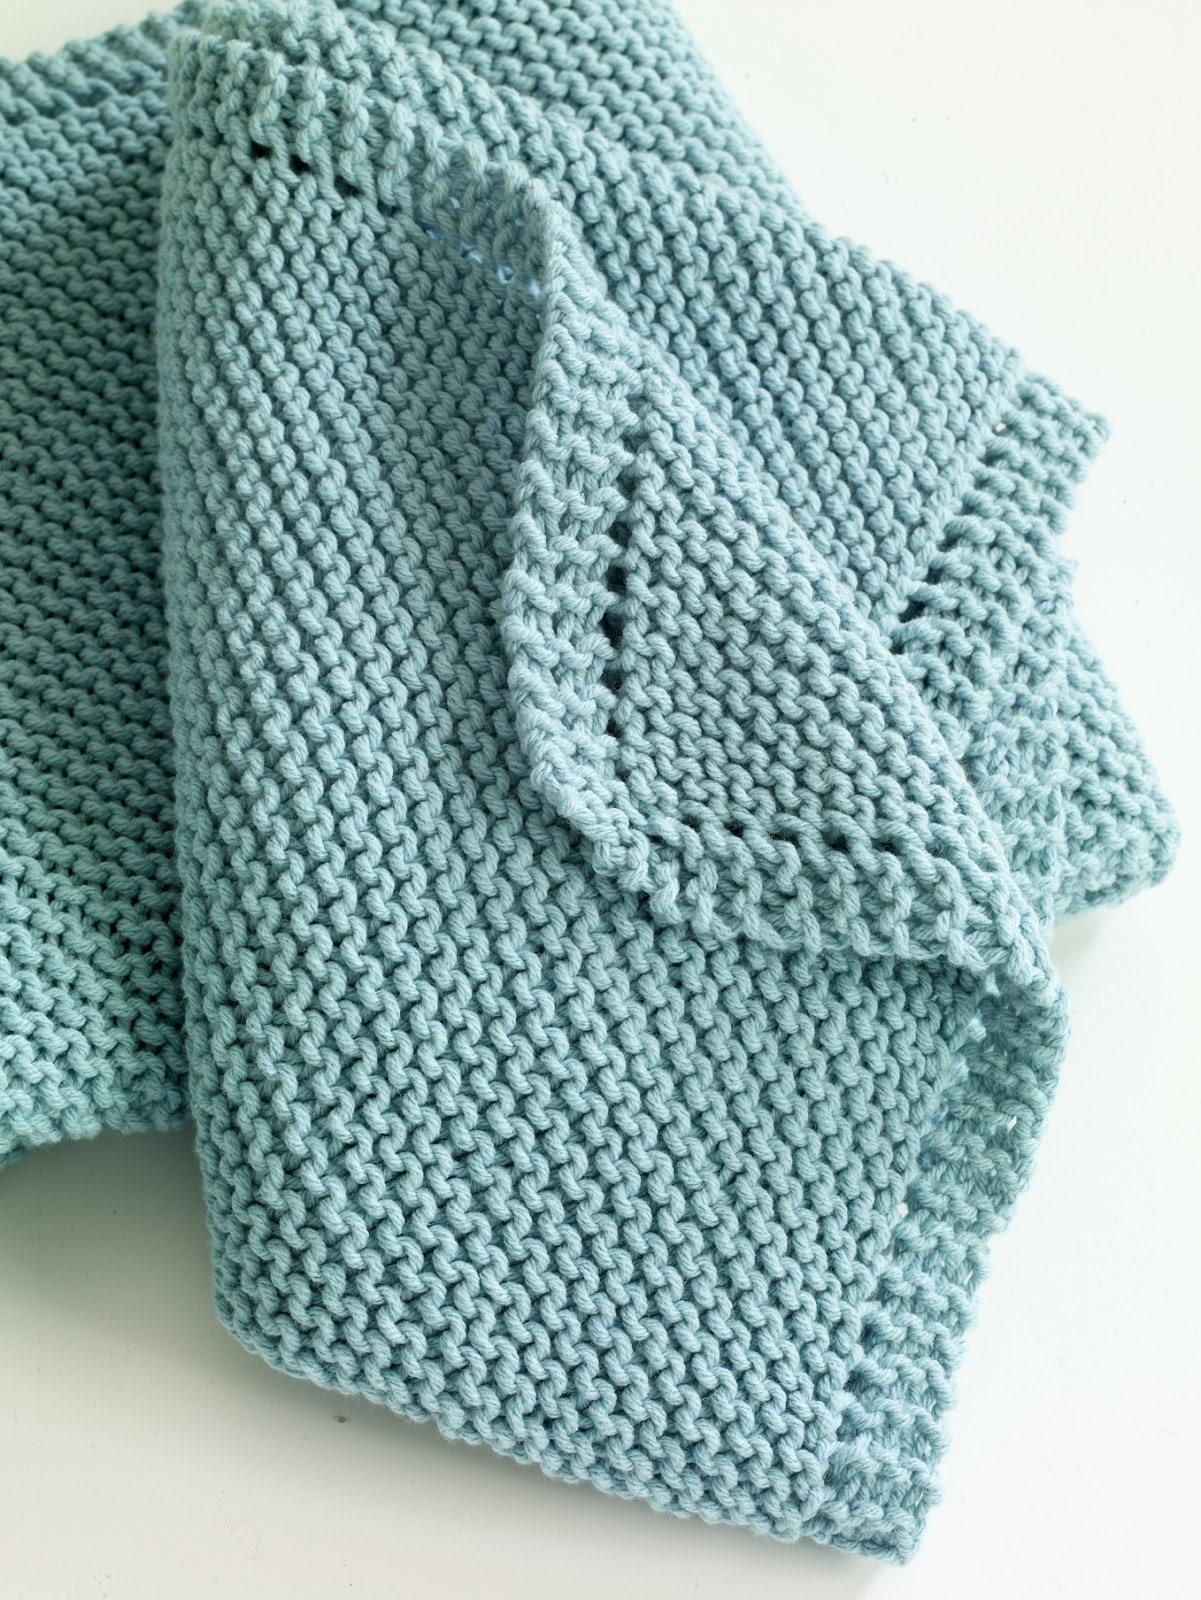 Easy Knitting Baby Blankets Pattern Beginners : Serenity Knits: December 2012